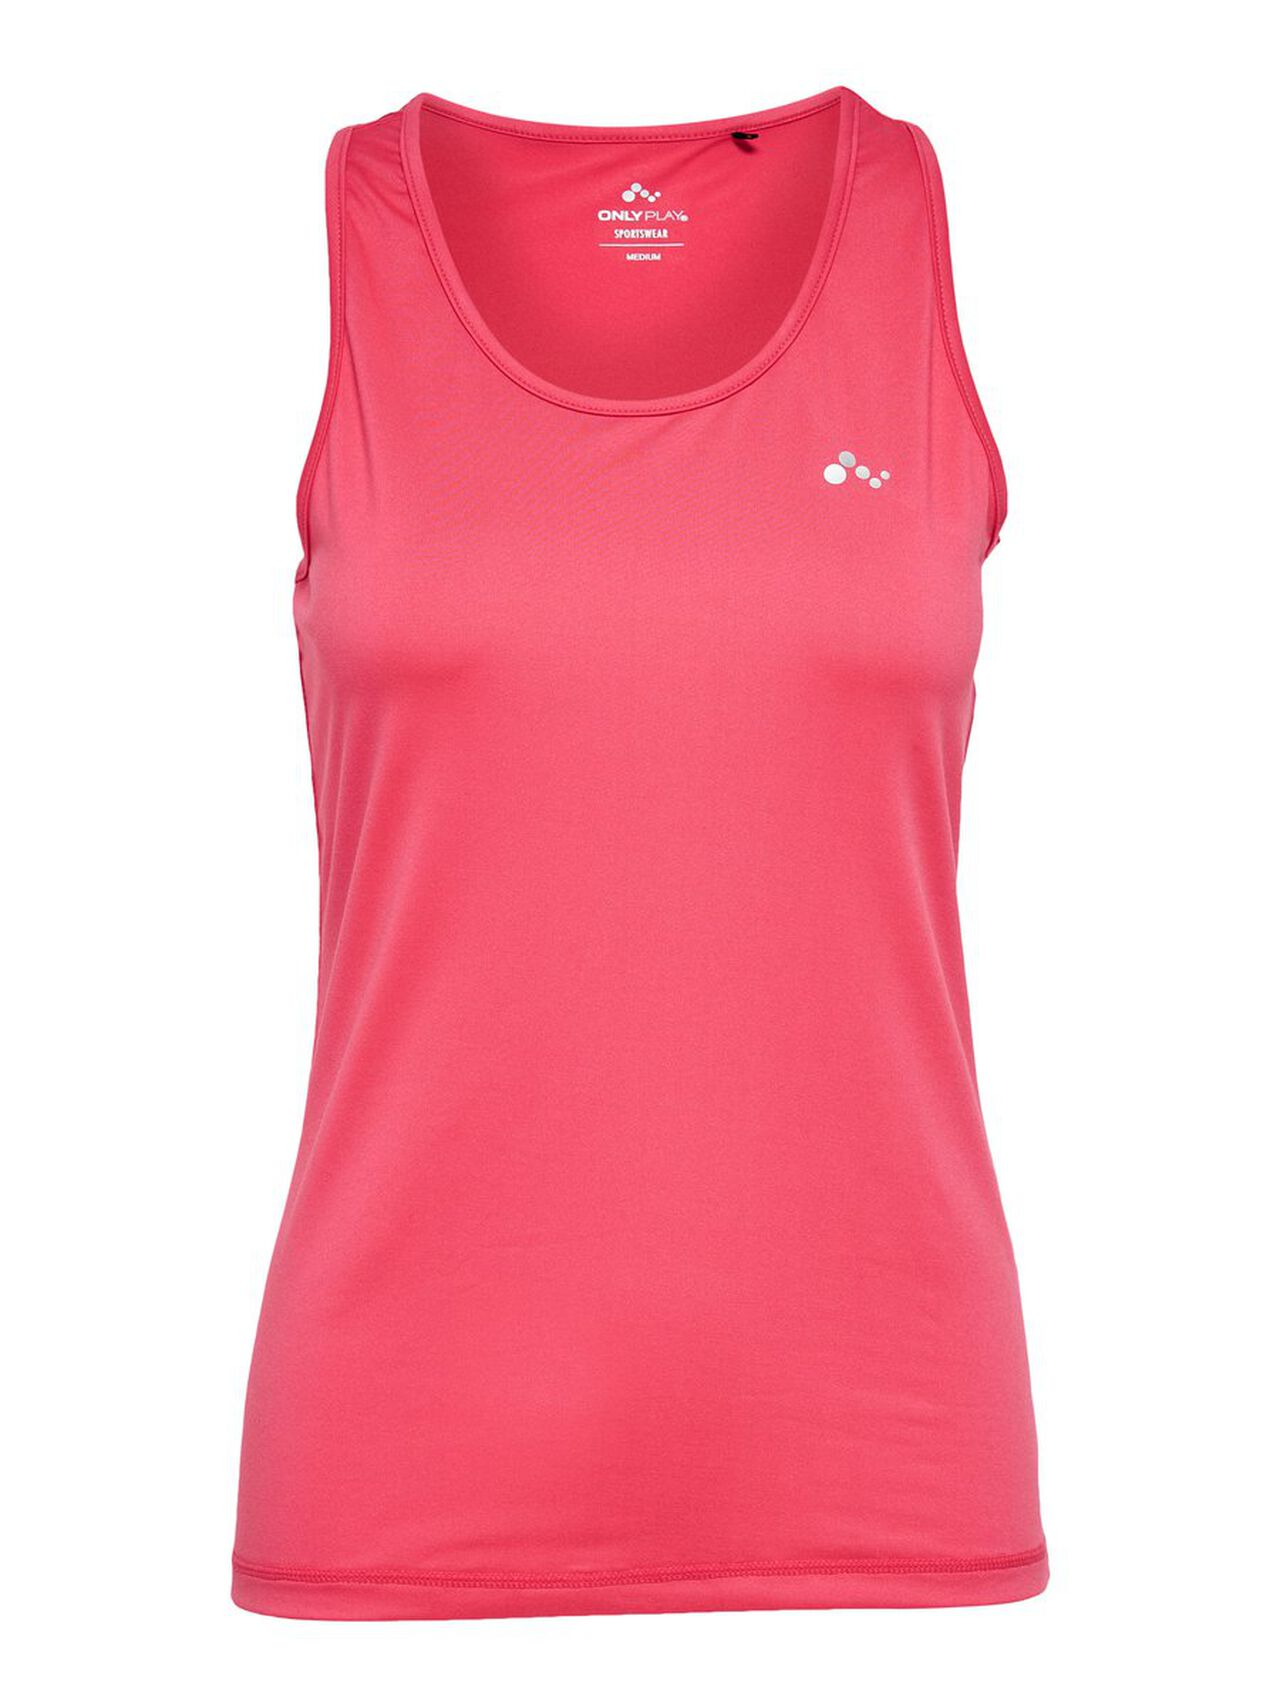 ONLY Solid Sports Top Women Pink